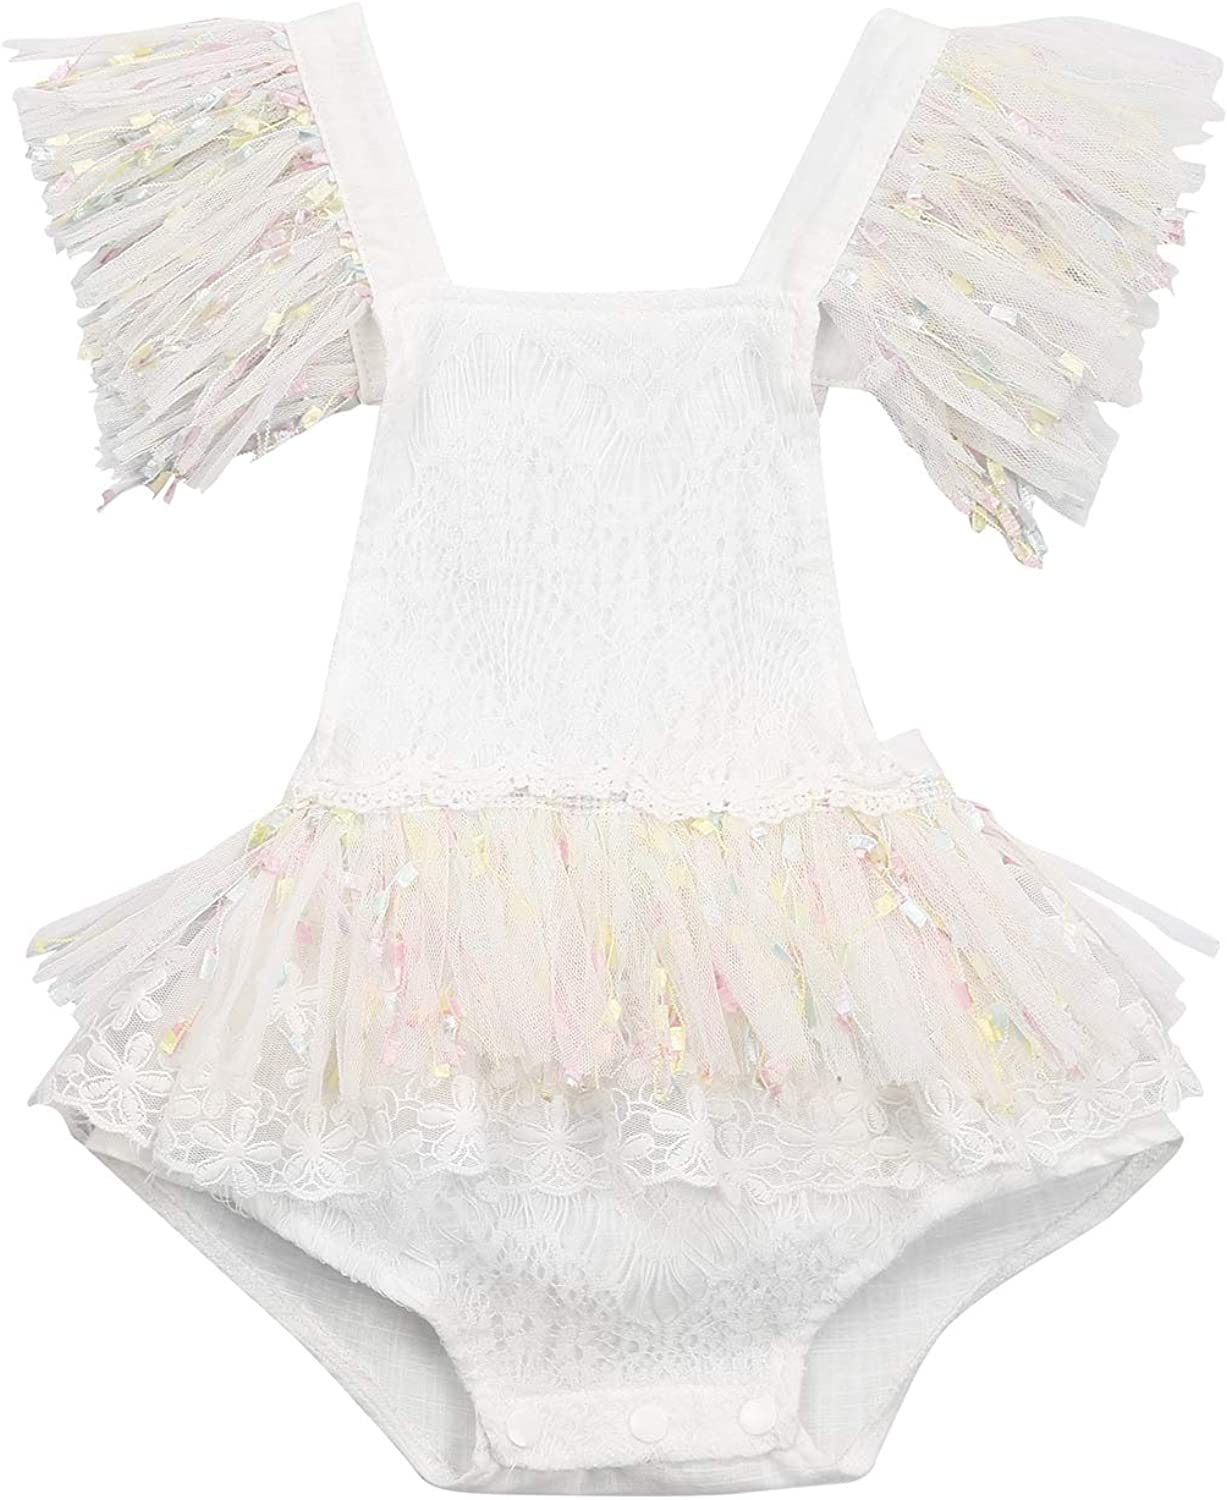 Newborn Infant Baby Girl Clothes Romper Sleeve Cheap mail Great interest order shopping Dress Ruffle Lace